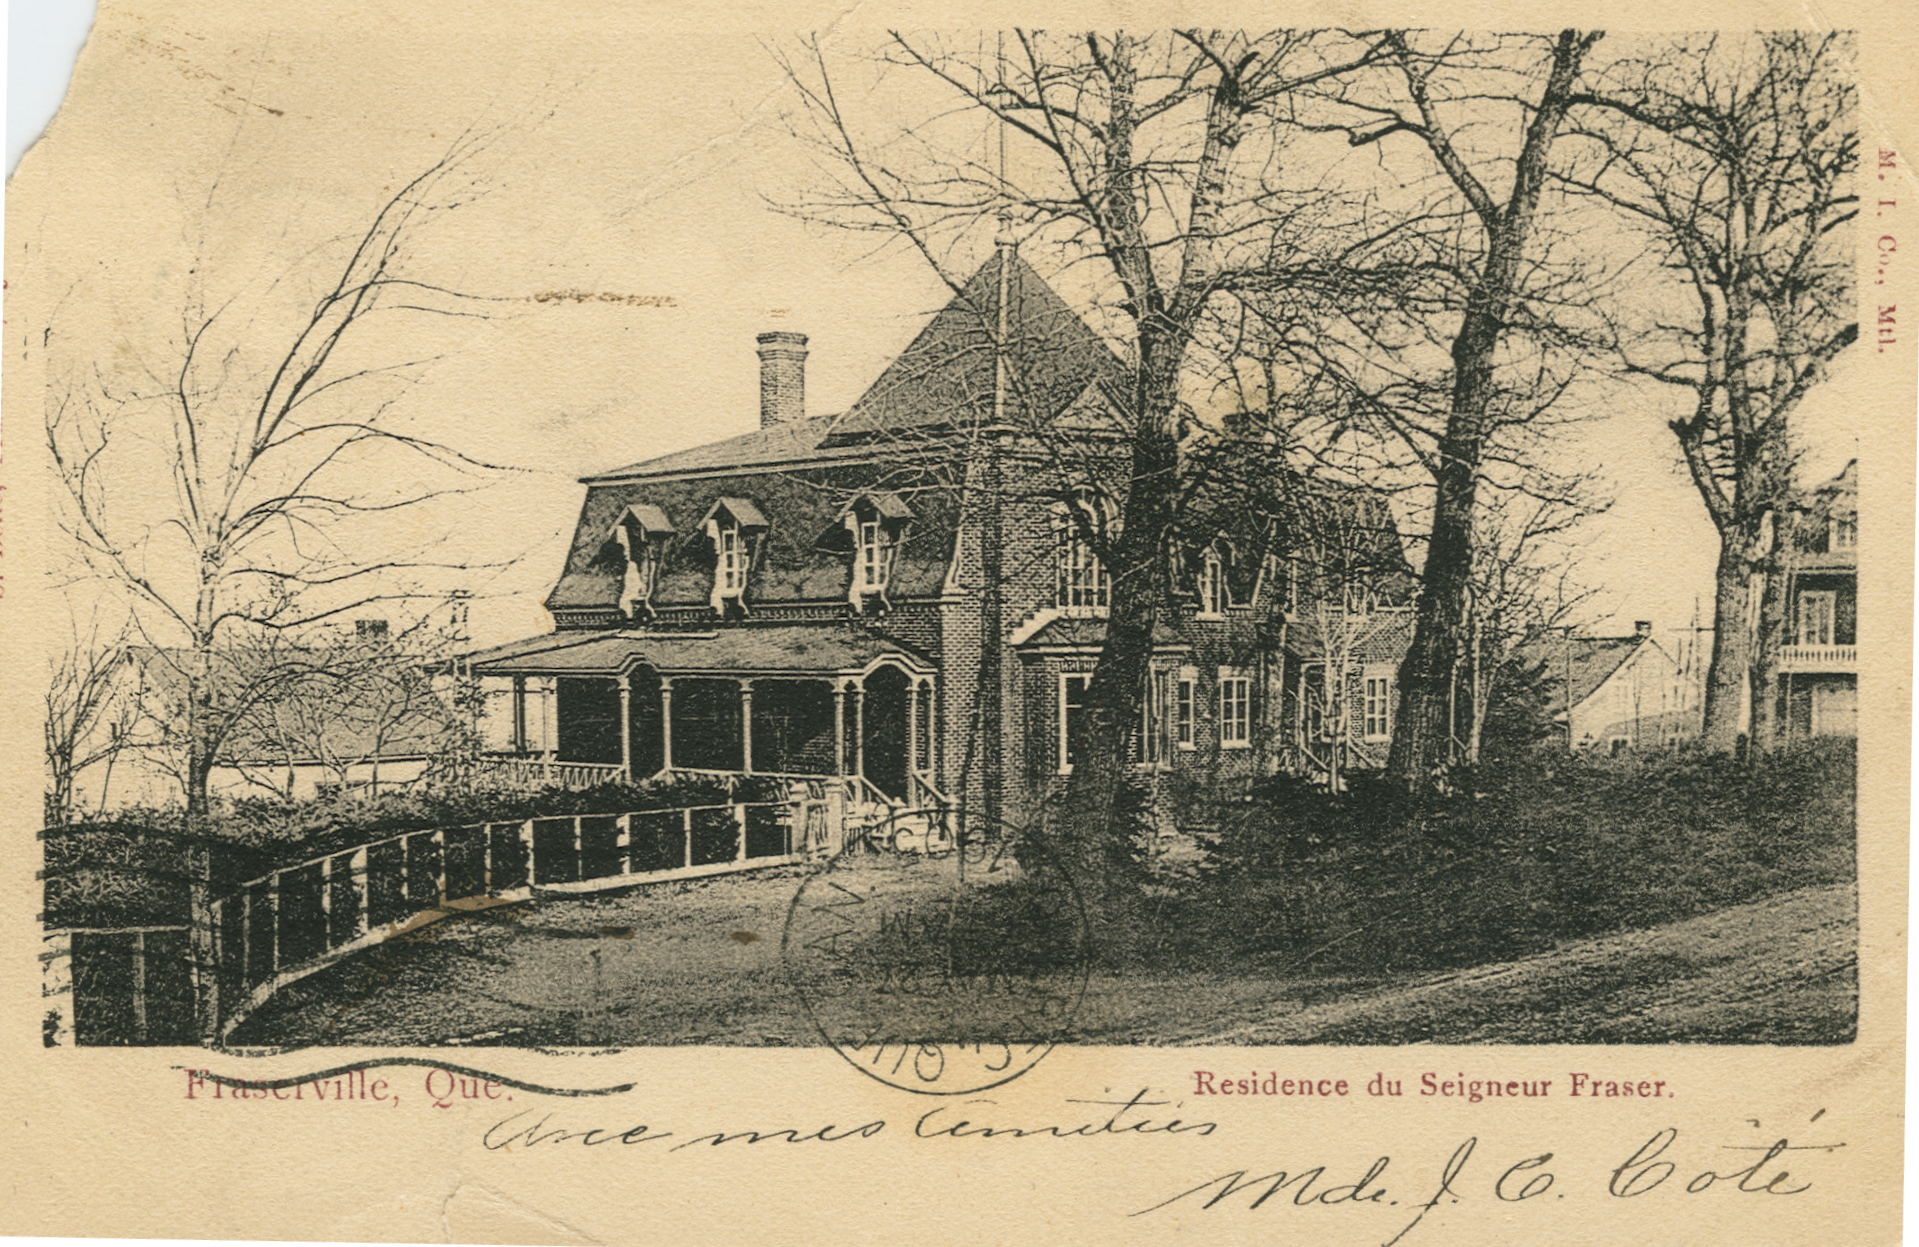 A black-and-white postcard showing a large elegant house with a veranda, bay window, and mansard roof. A few mature trees line the drive to the house.